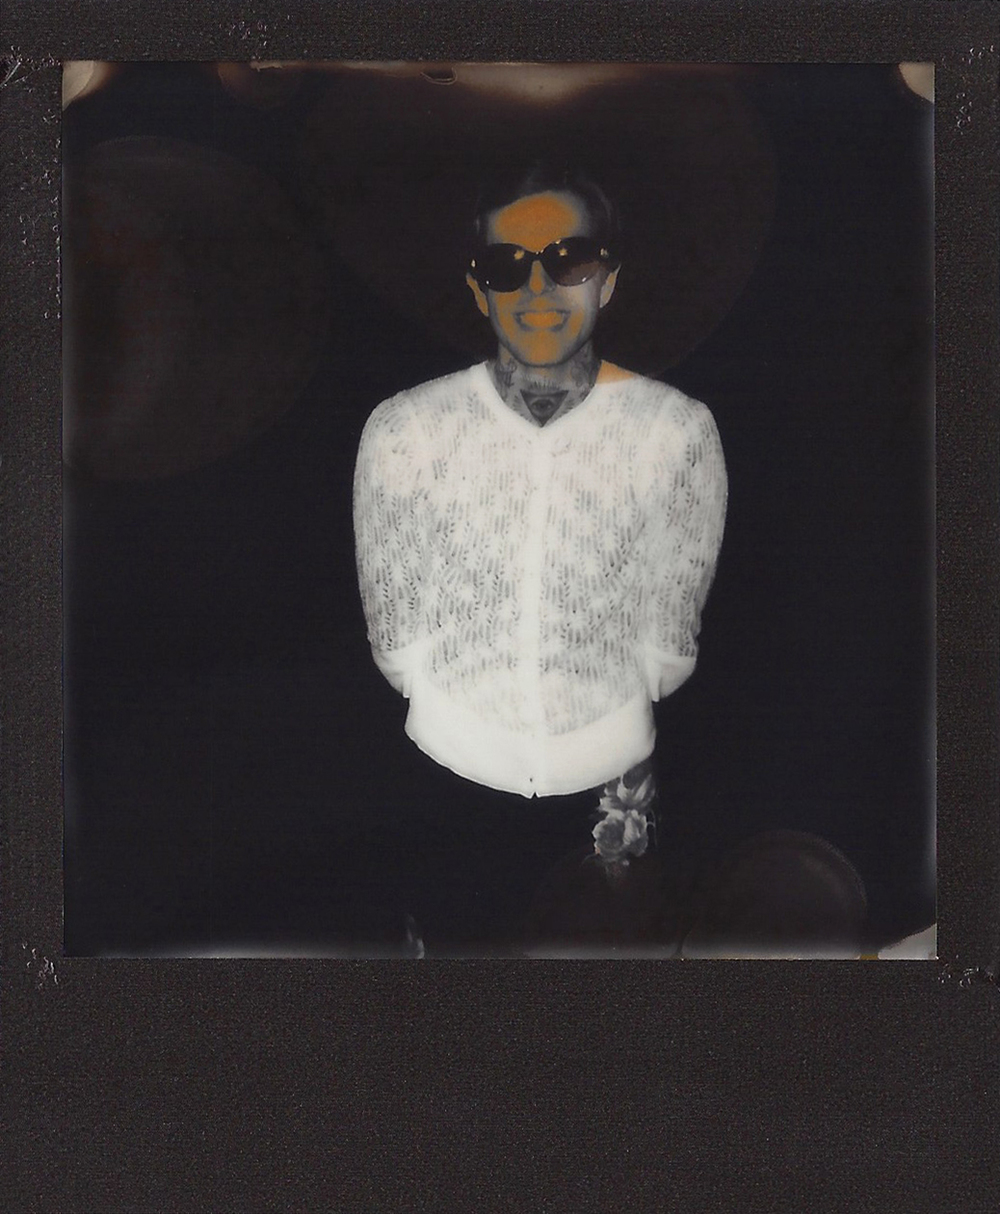 The-NBHD-Polaroid-3-casenruiz.jpg